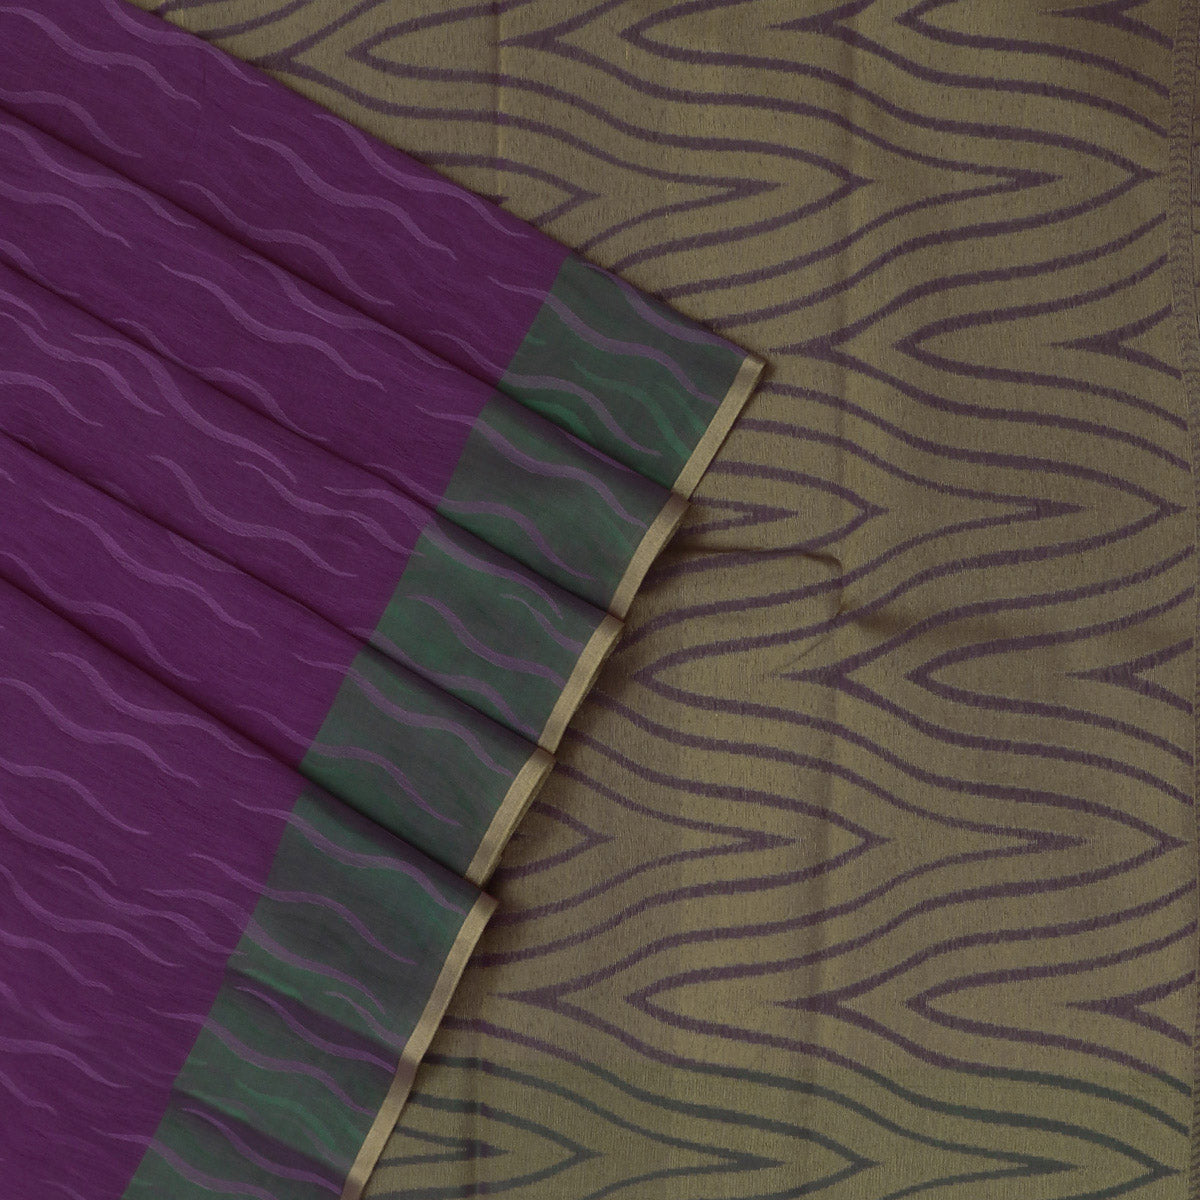 Kora silk saree lavender and Green with zari border